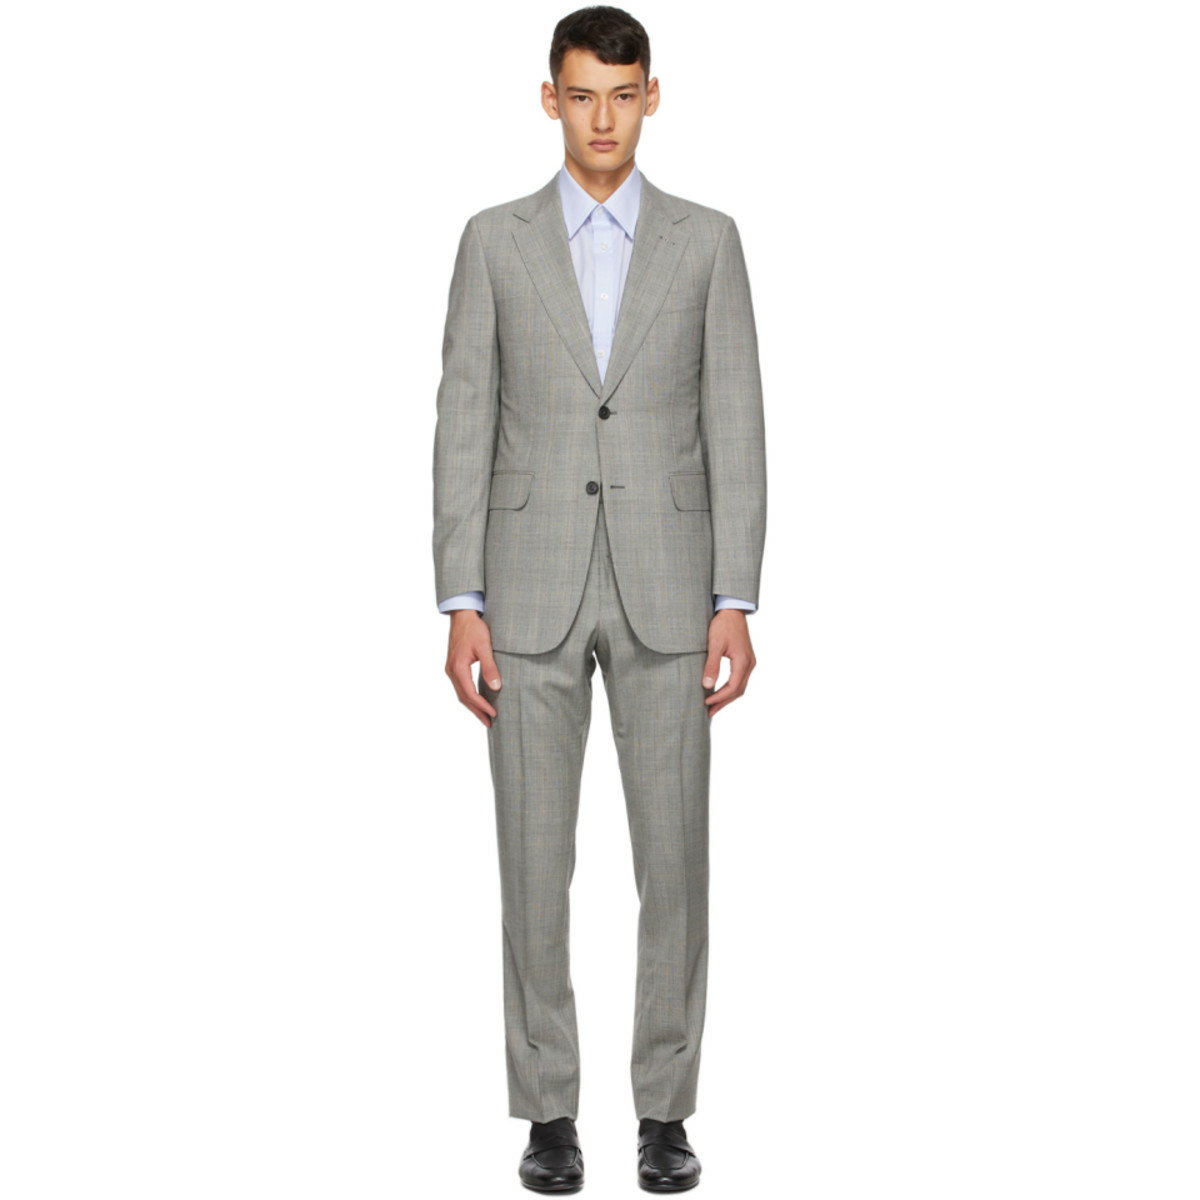 Men FASHION - GOOFASH - Mens SUITS